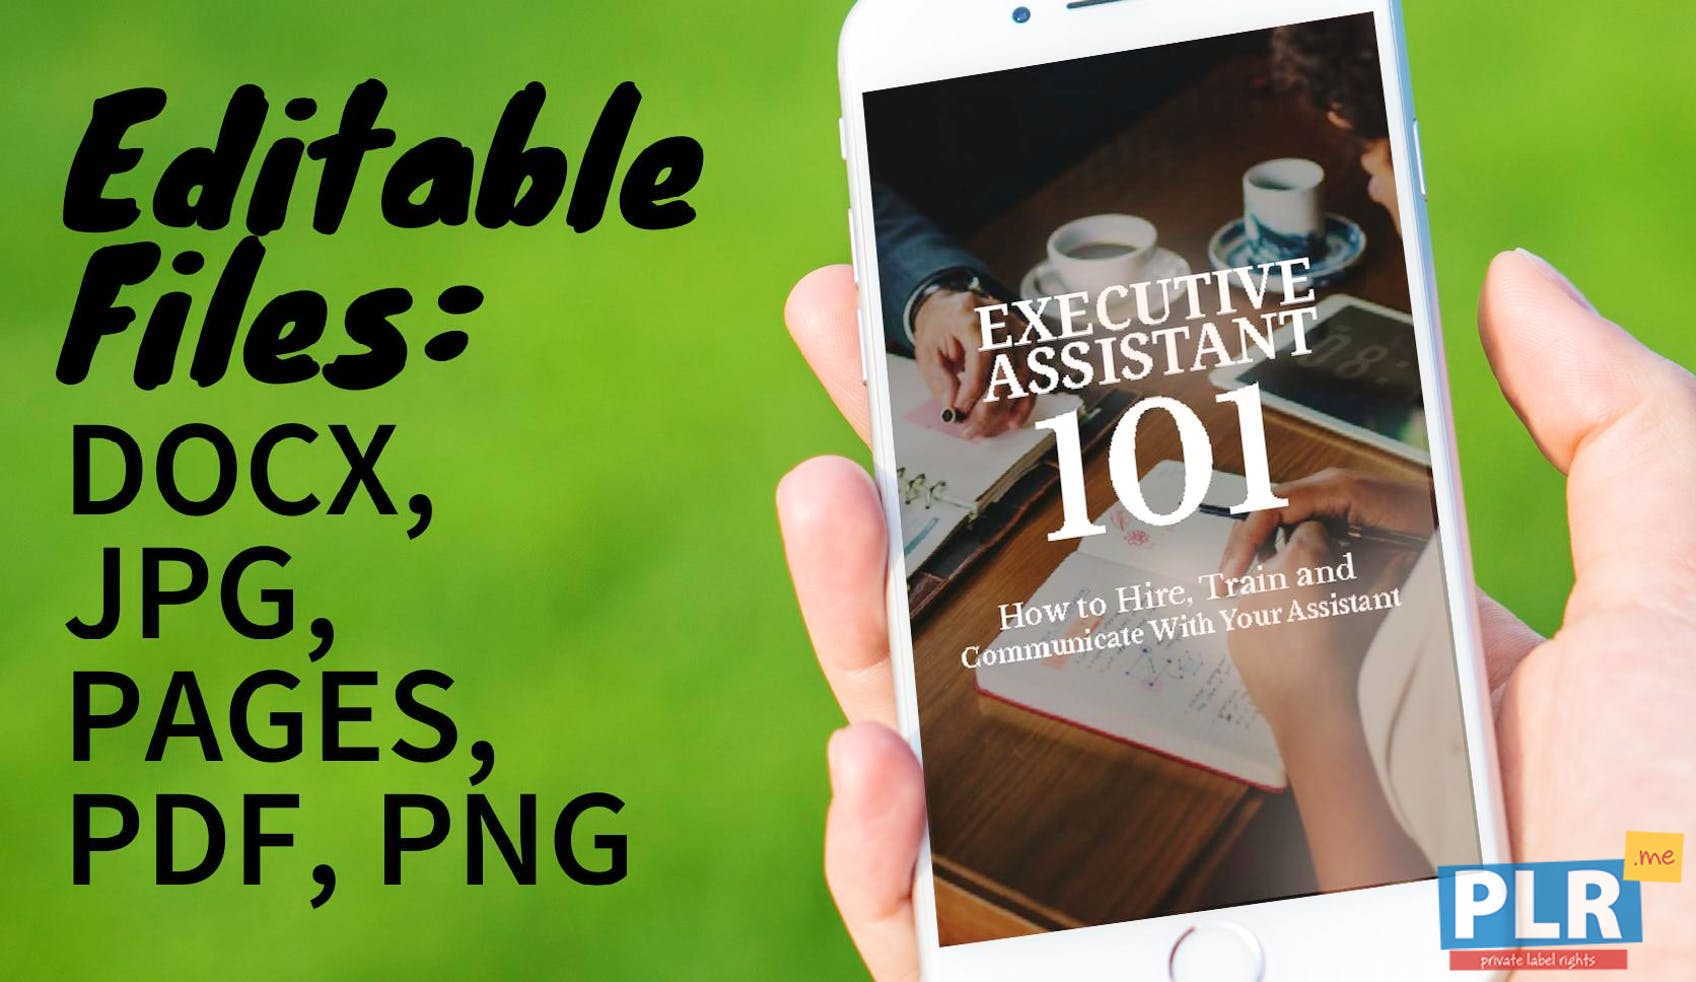 Executive Assistant 101 How To Hire, Train And Communicate With Your Assistant